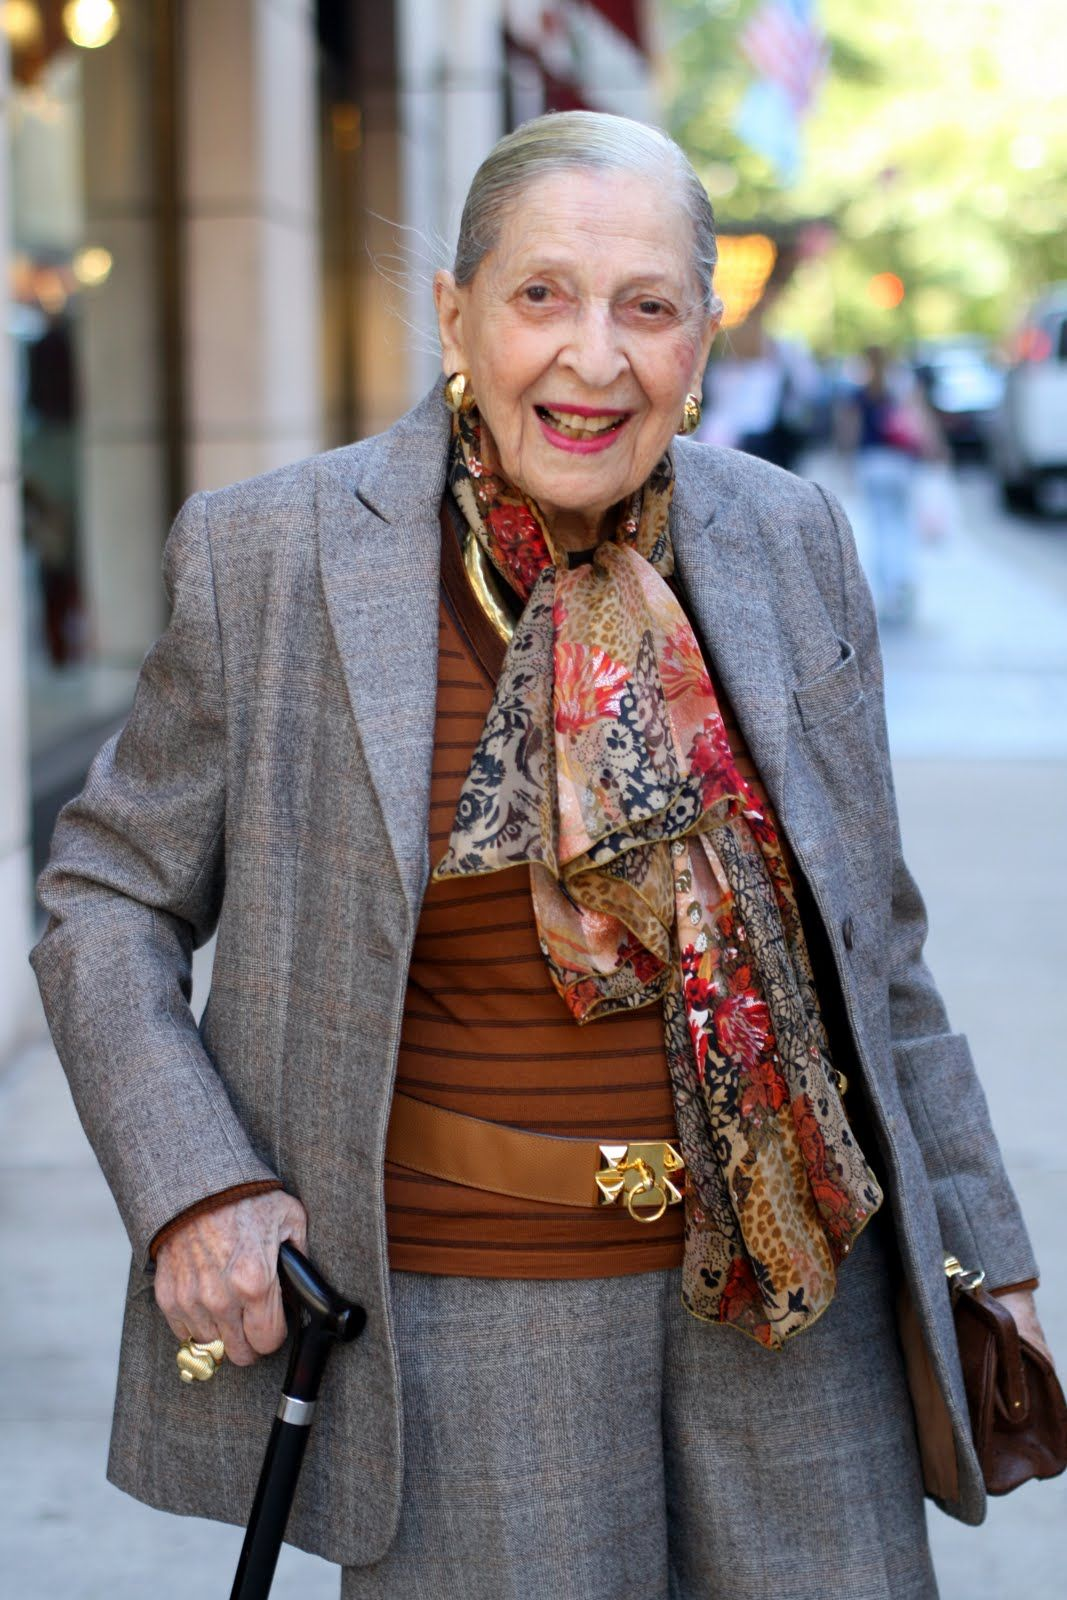 """Here are Rose's top ten beauty and lifestyle secrets on how to look and feel great at 98  Find your perfect perfume, people will remember you by your scent. Rose is known for her Pauline Trigere fragrance.She tells her granddaughter """"I'll give you anything in the world, but I won't give you my perfume.""""  Belts and Beads. Rose believes that a belt or unique strand of beads can really make an outfit and they don't have to cost a fortune.  Take care of your feet and wear good shoes, but when…"""